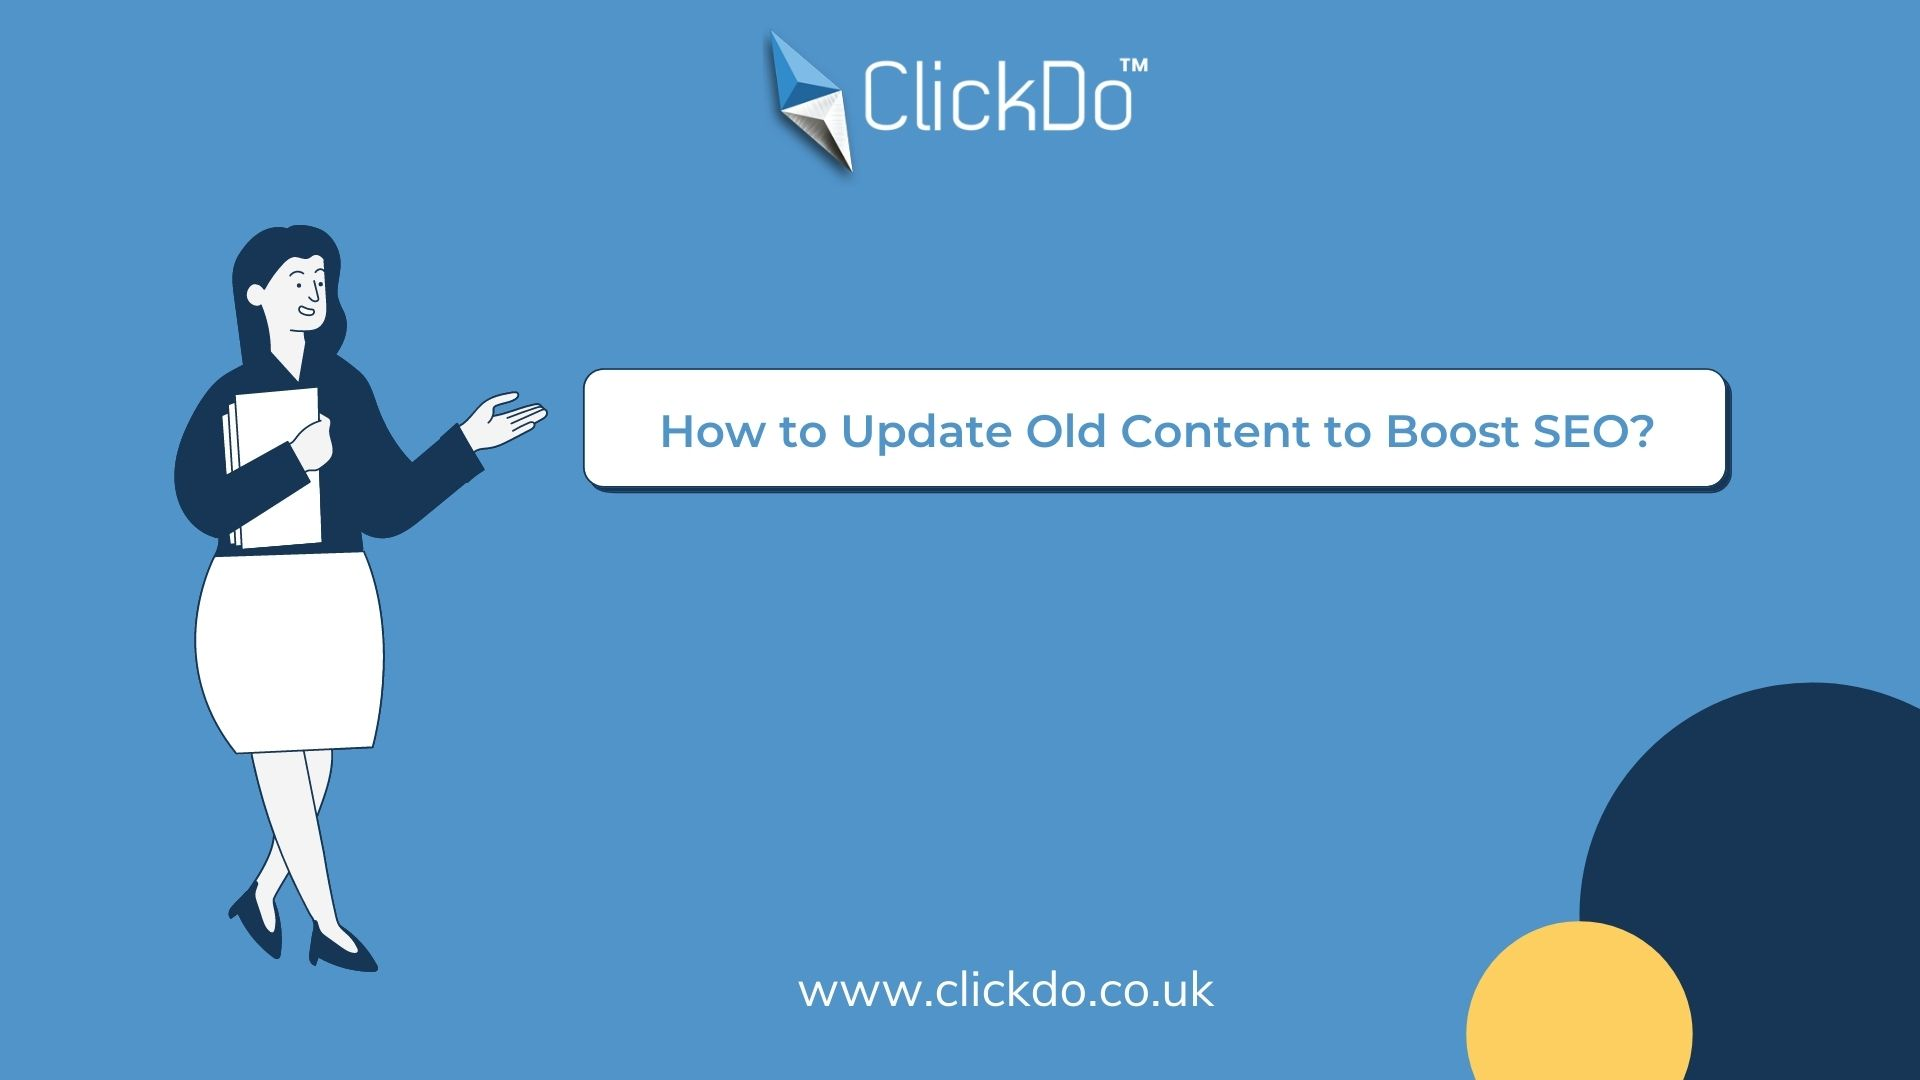 How to Update Old Content to Boost SEO